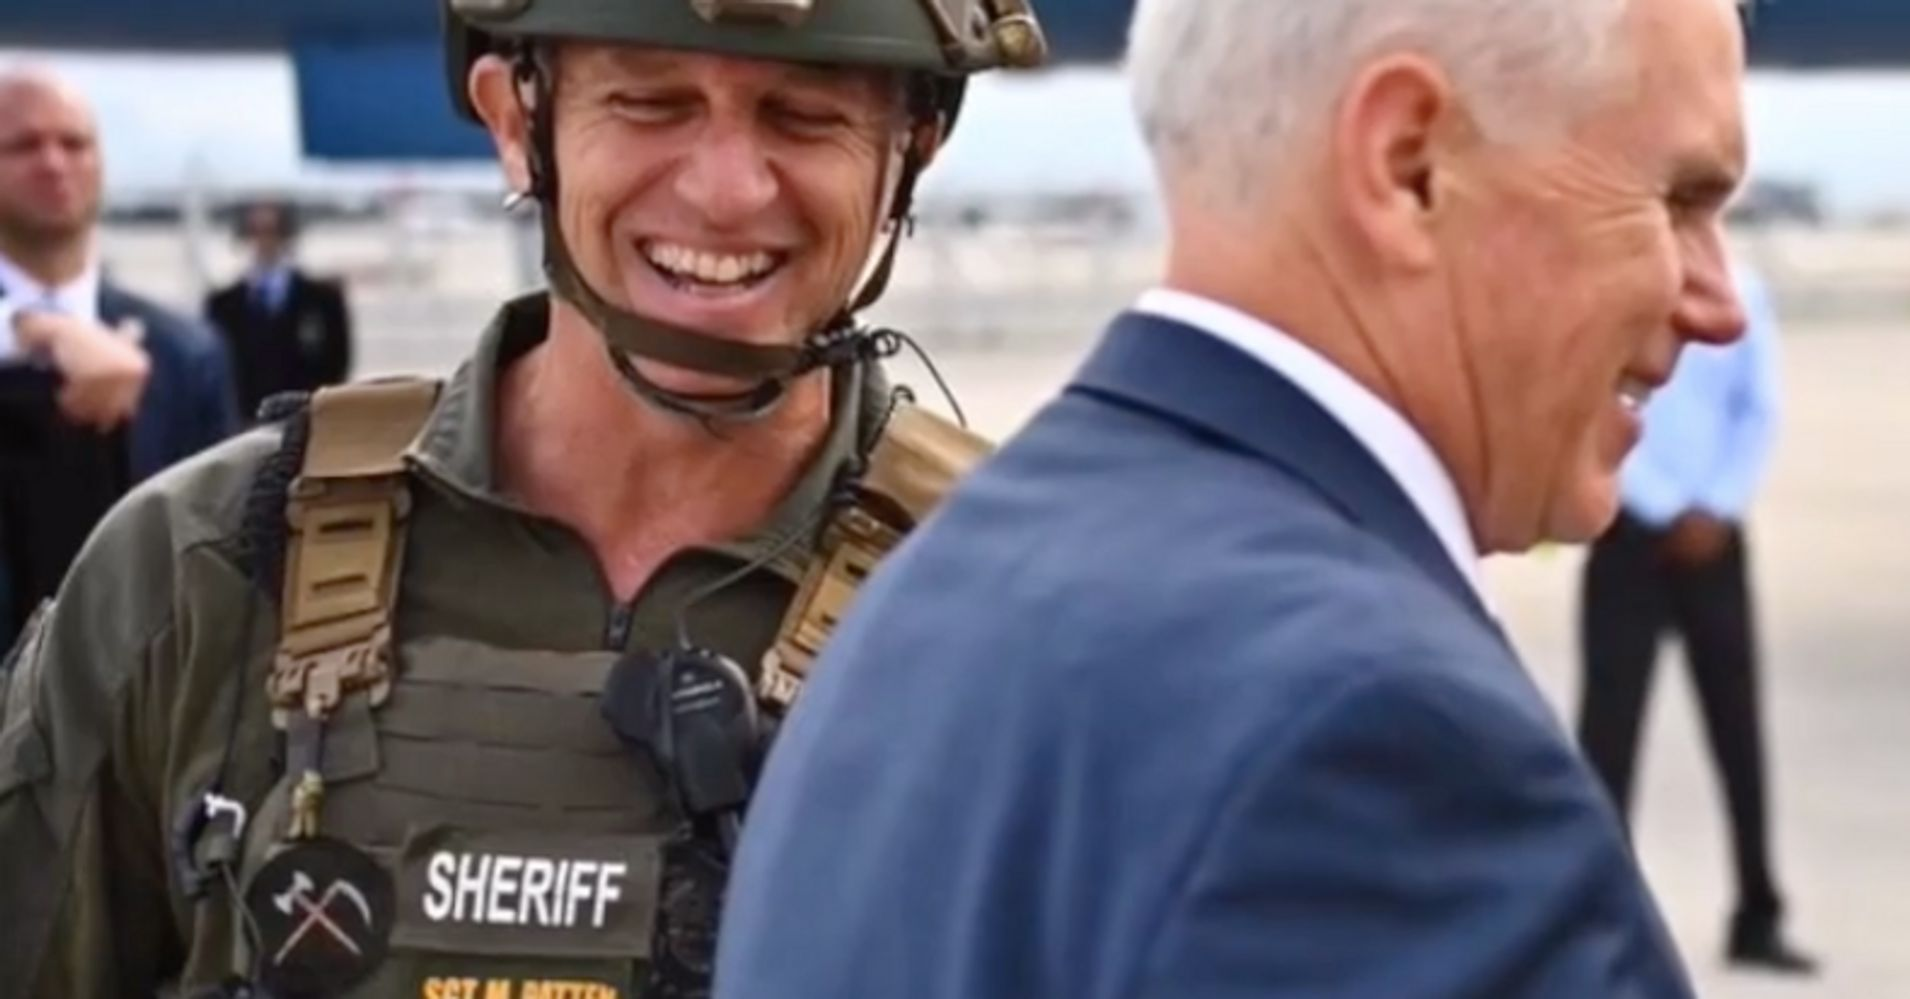 Florida SWAT Officer Demoted After Wearing QAnon Patch In Photo With Mike Pence